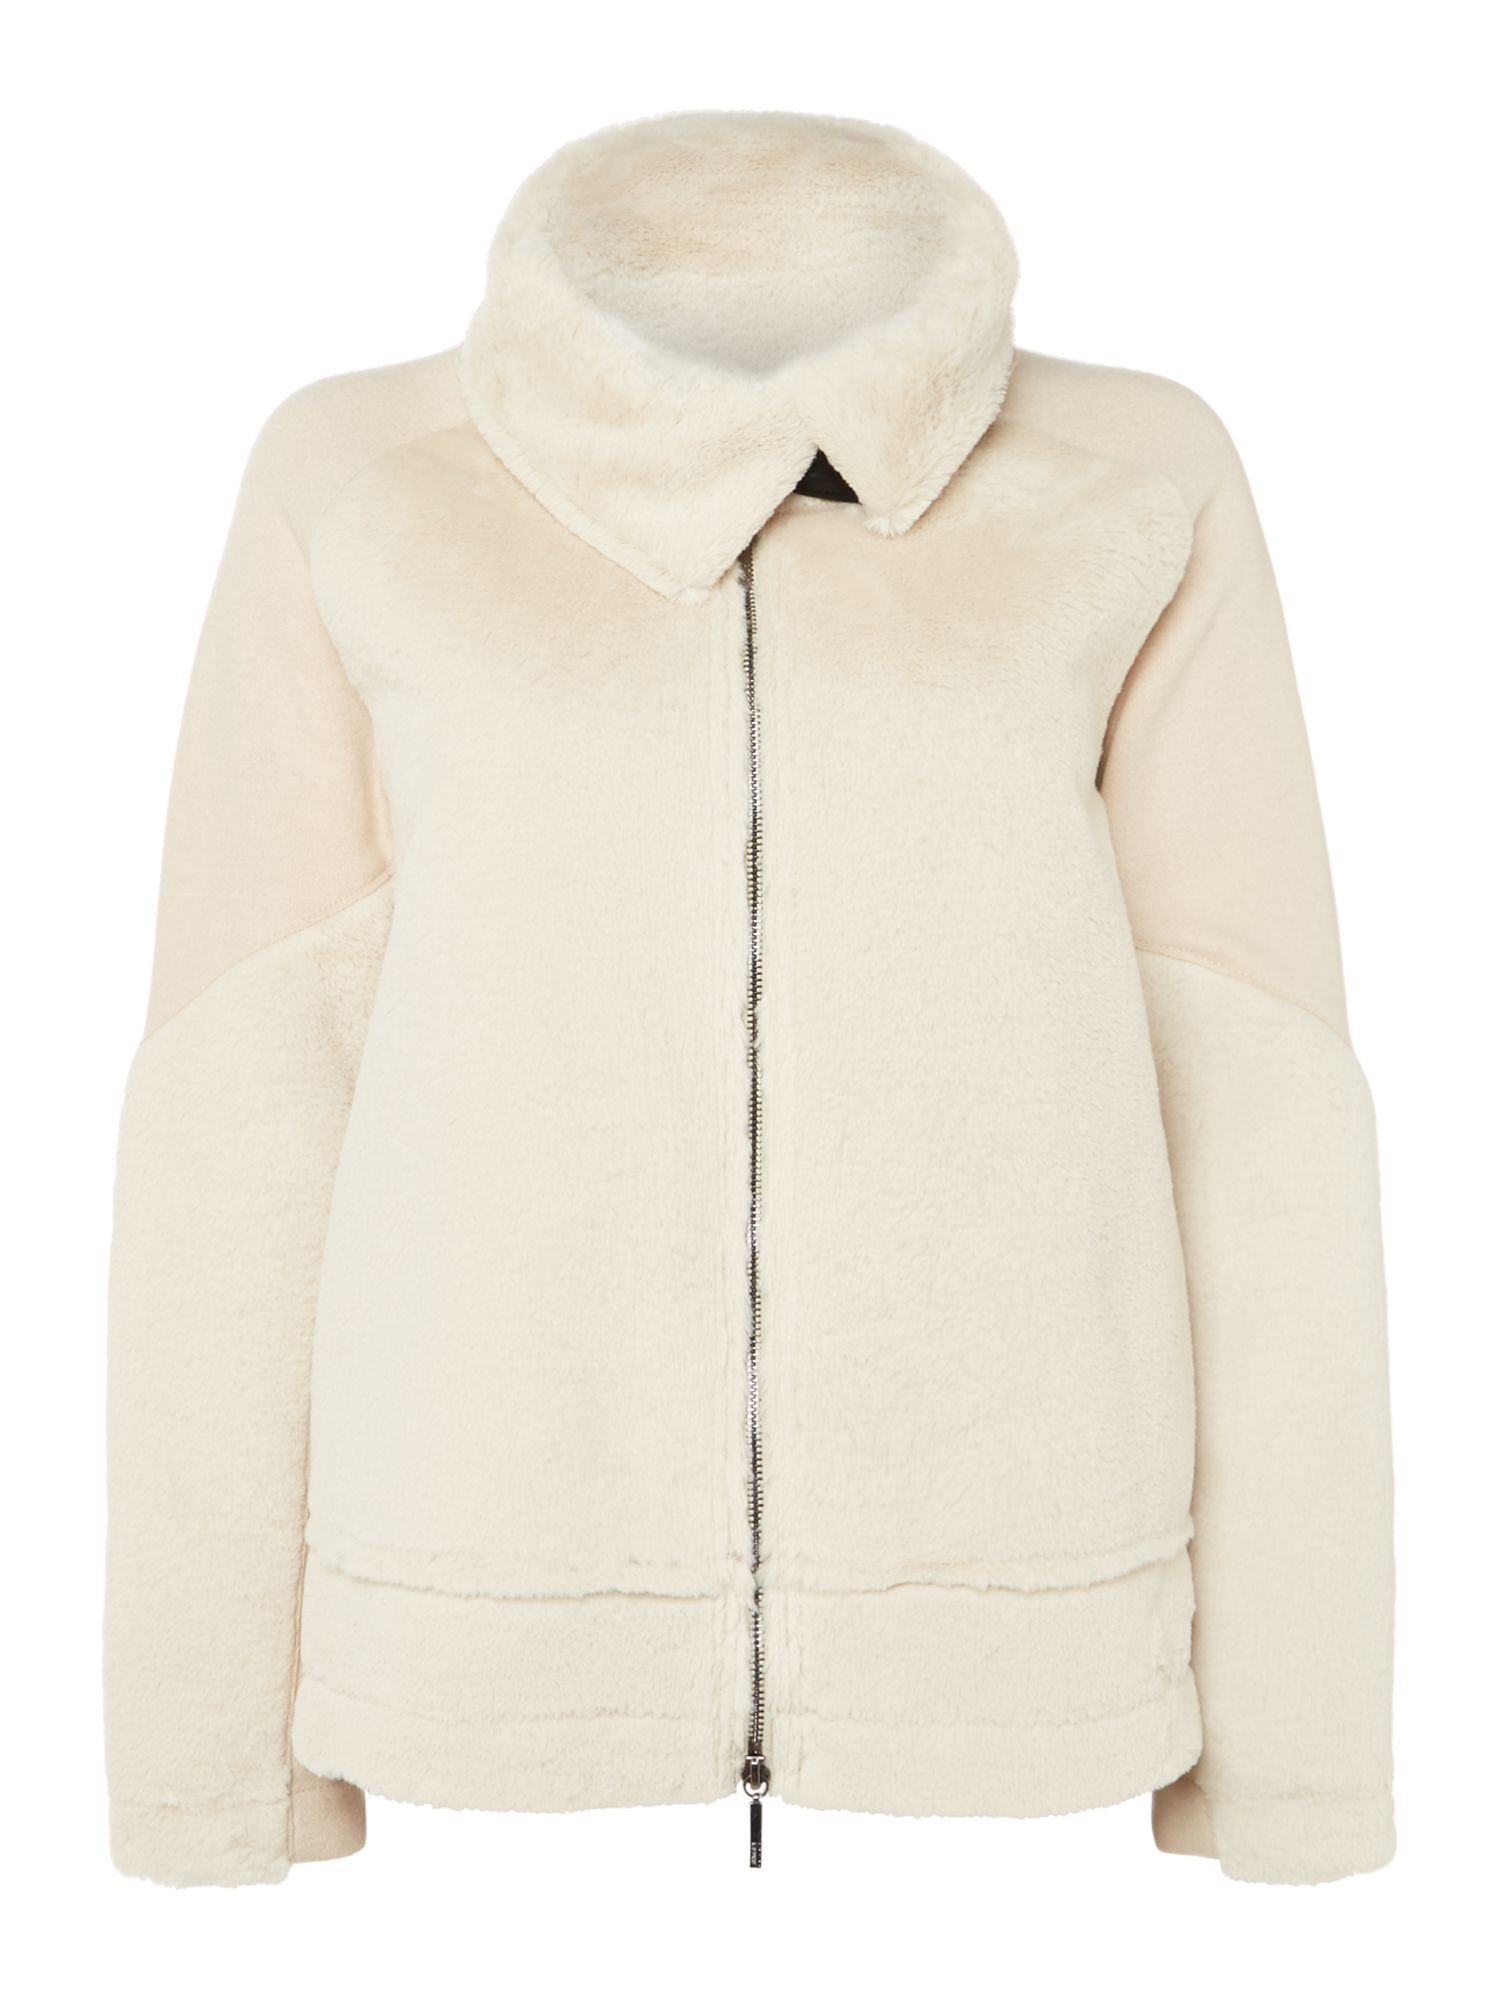 Armani Jeans Shearling jacket in beige chiaro, Off White